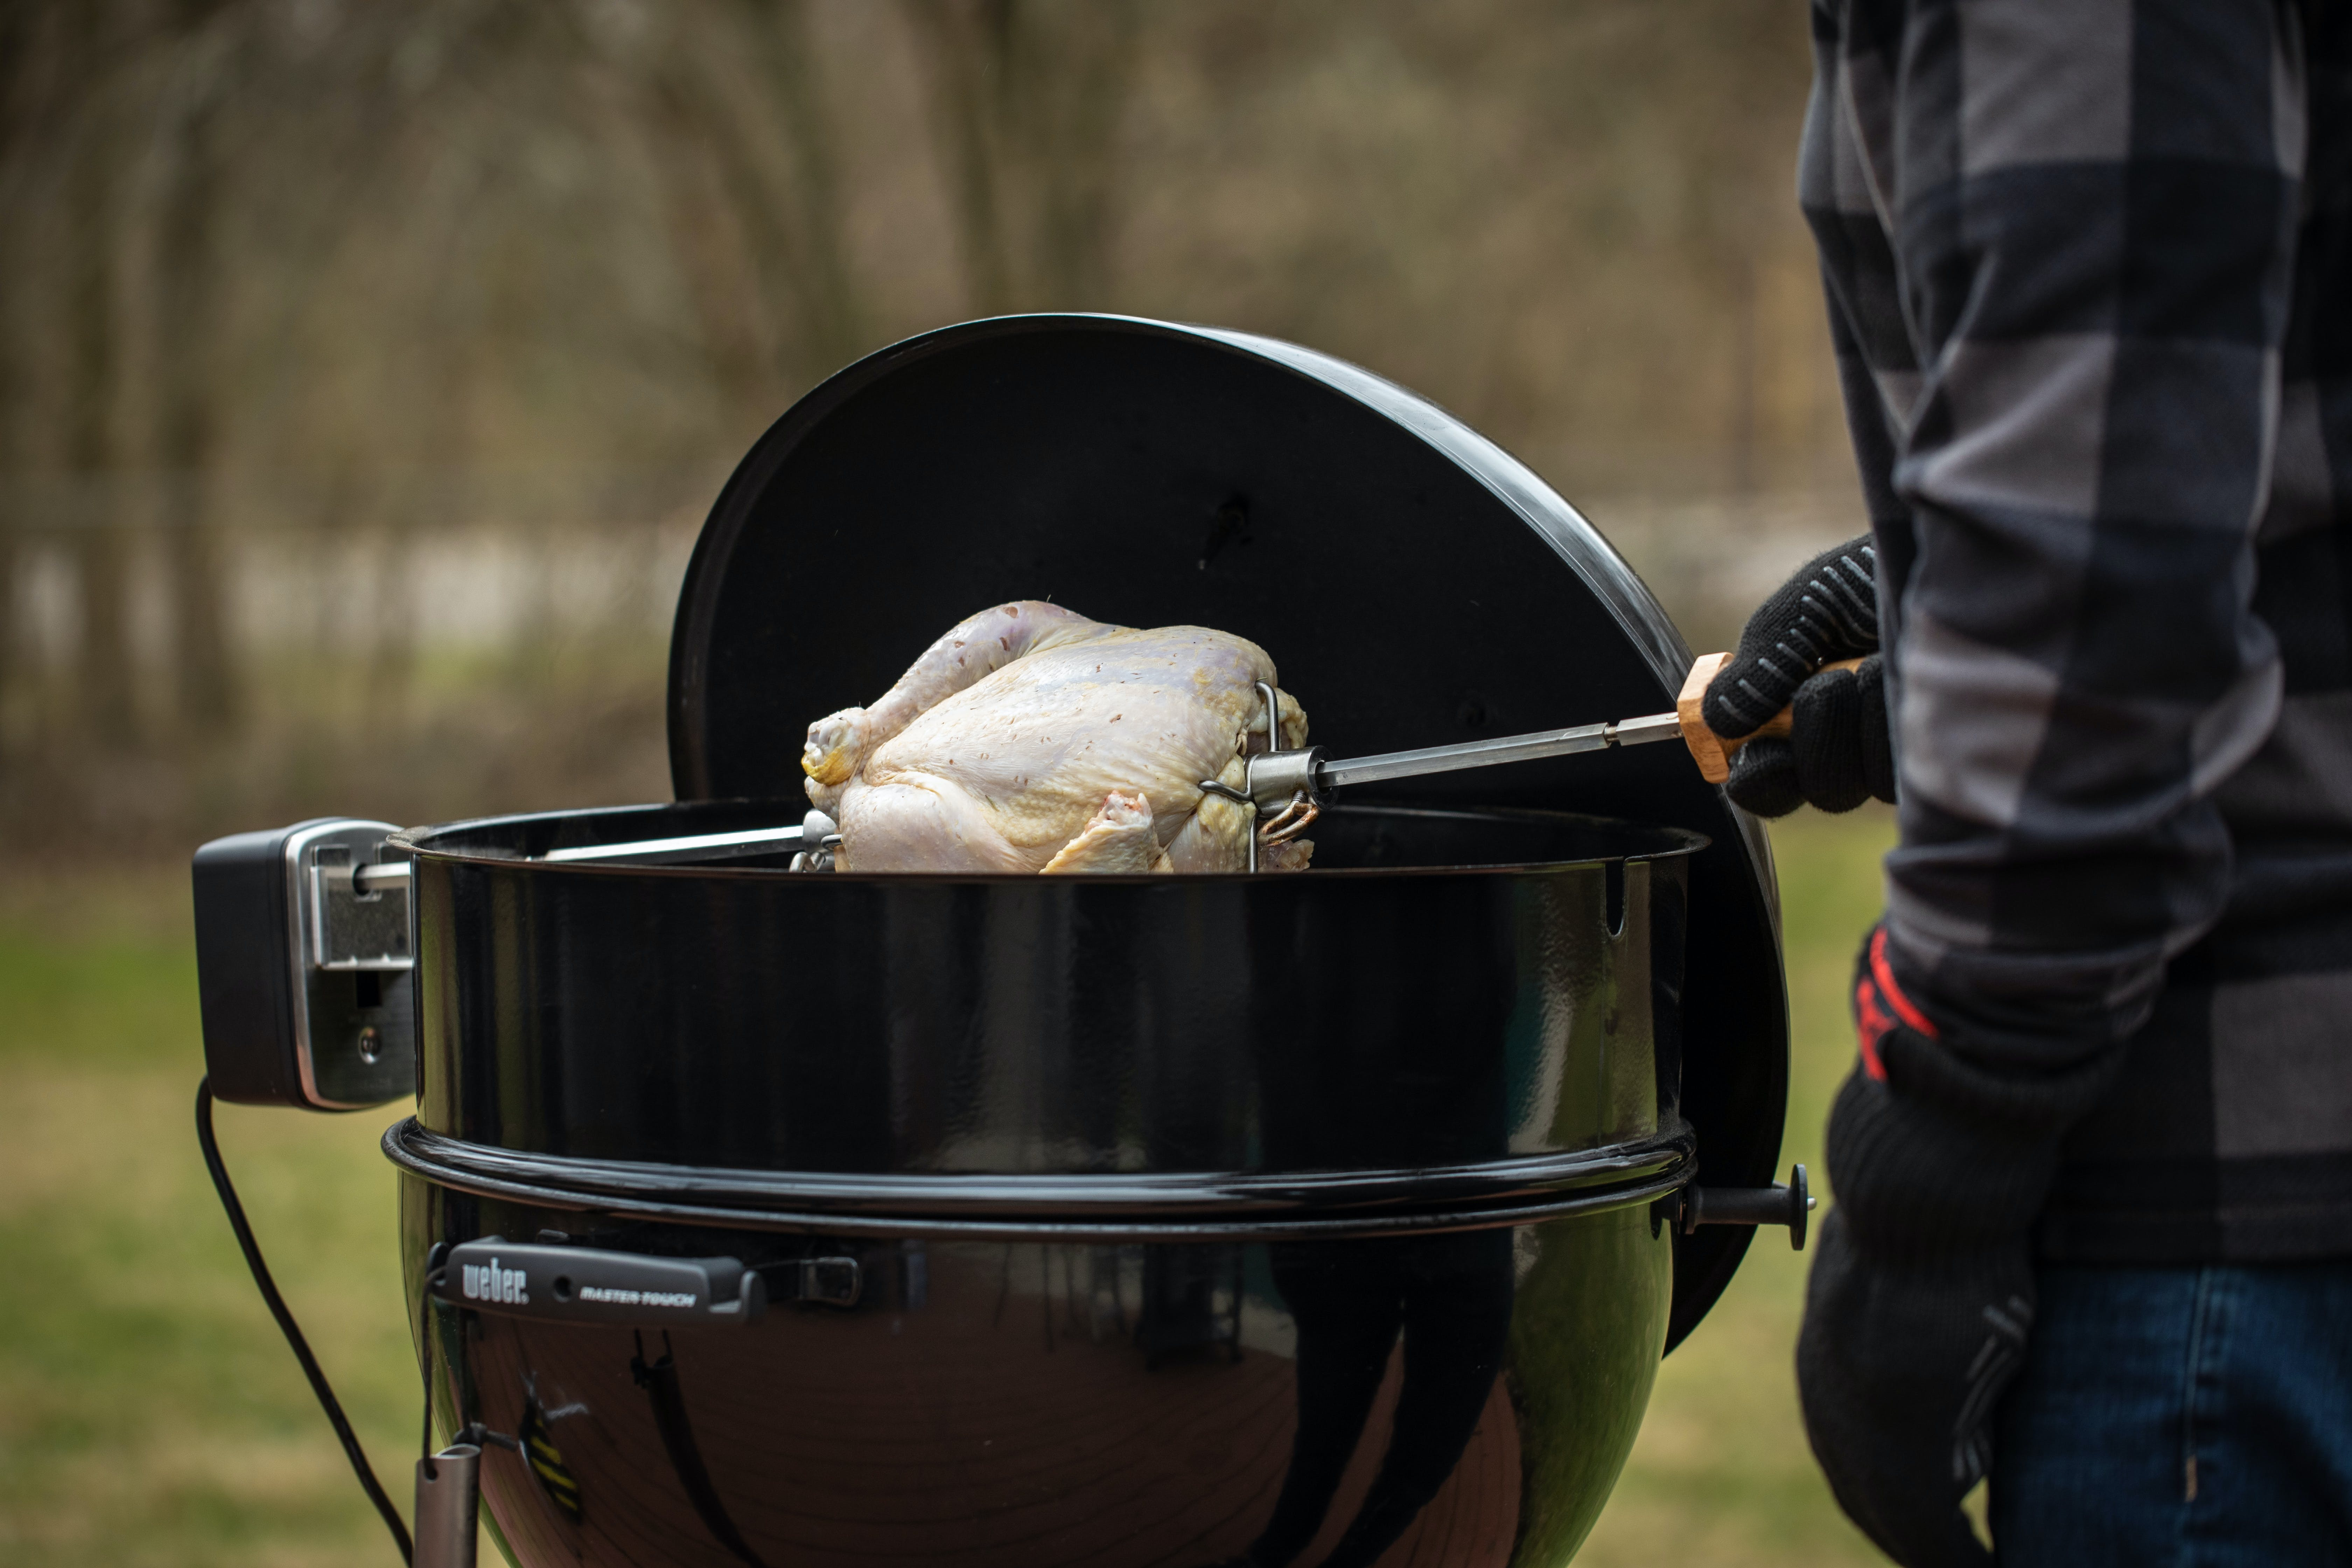 2019 01 Lang Rosemary Brined Chicken Photo Raw Turkey On Rotisserie On Kettle 11